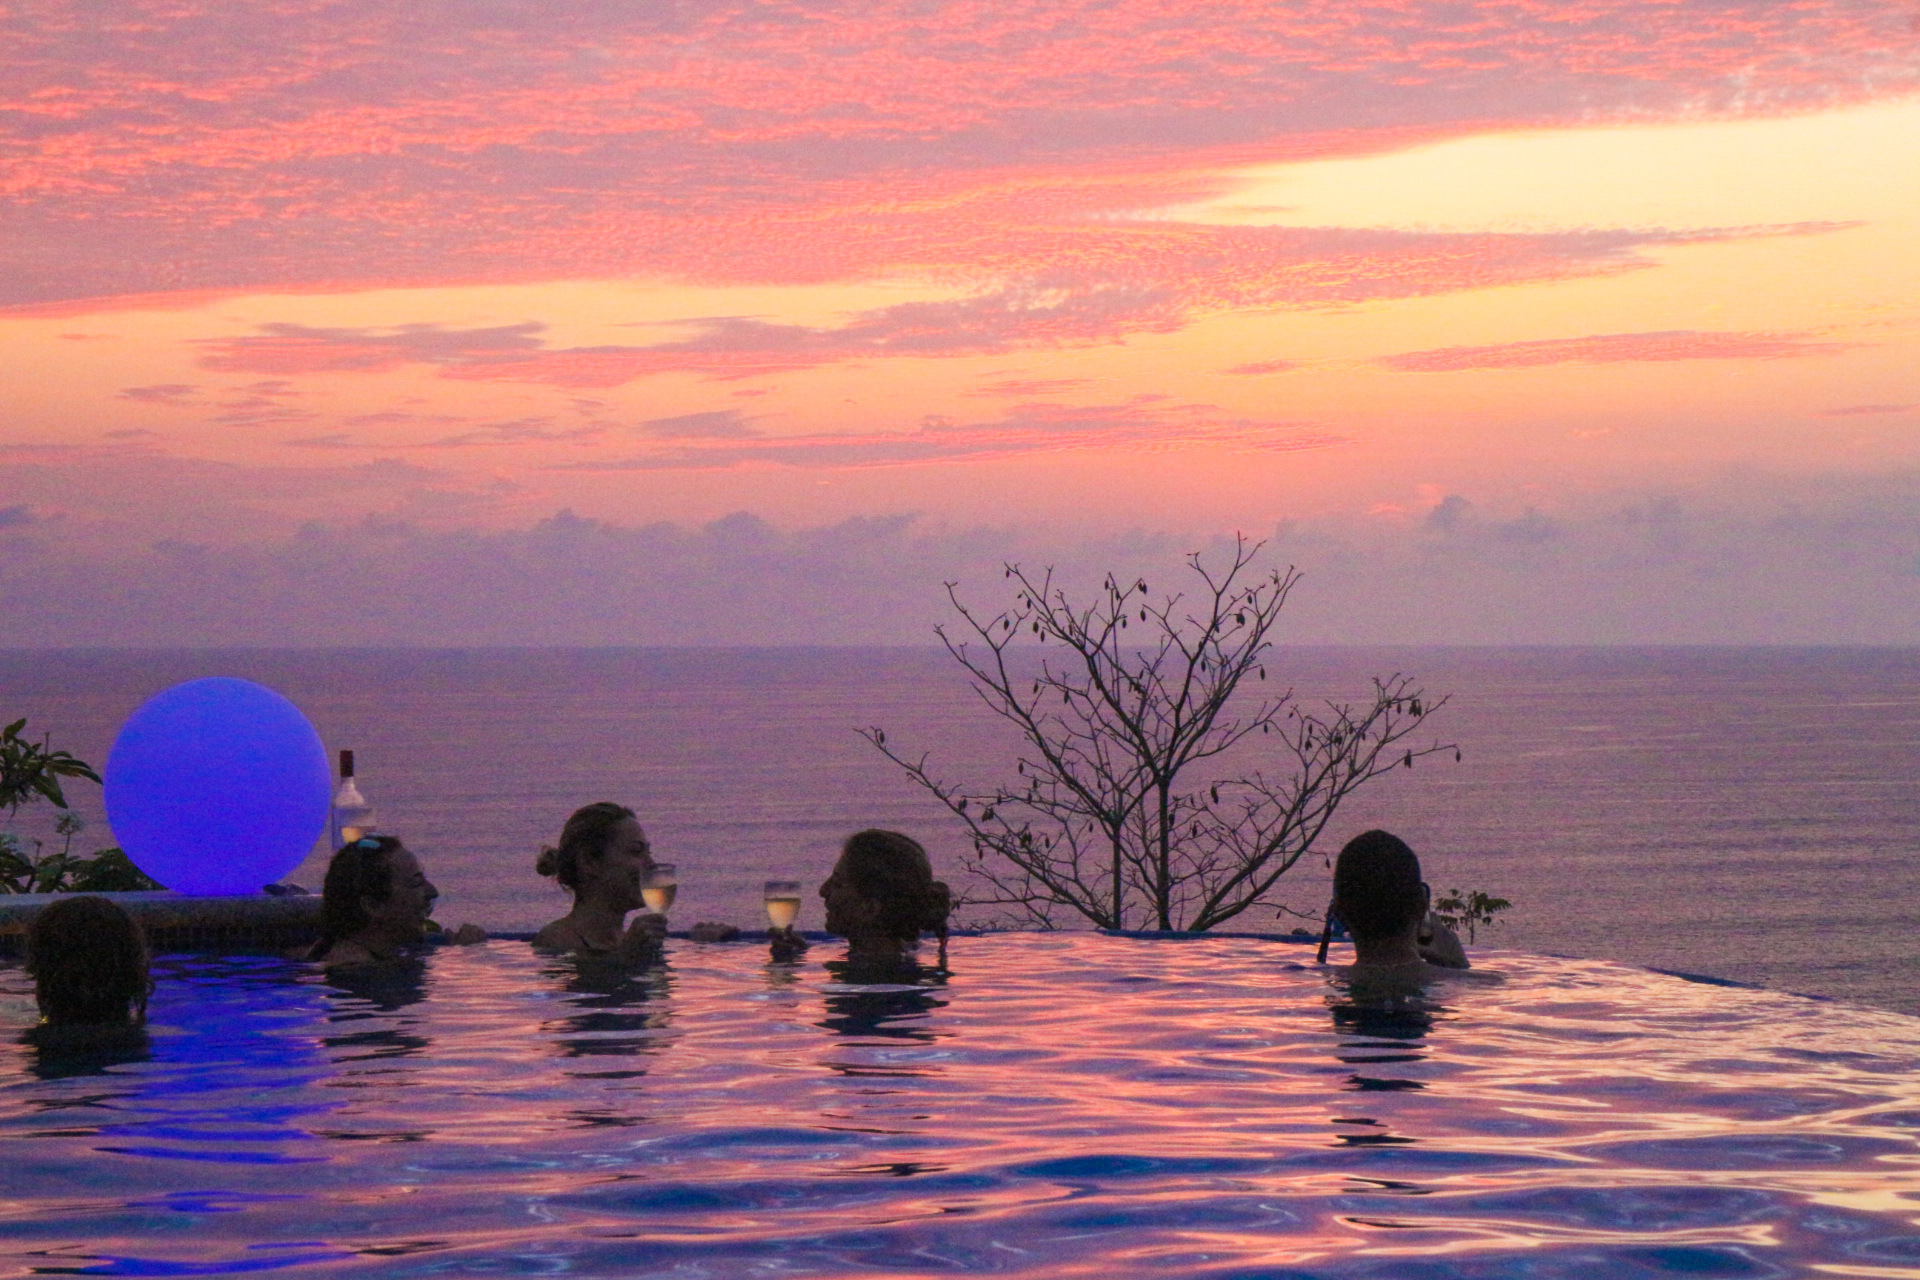 Enjoying magical sunsets that never seem to end with our retreat guests (old & new friends).